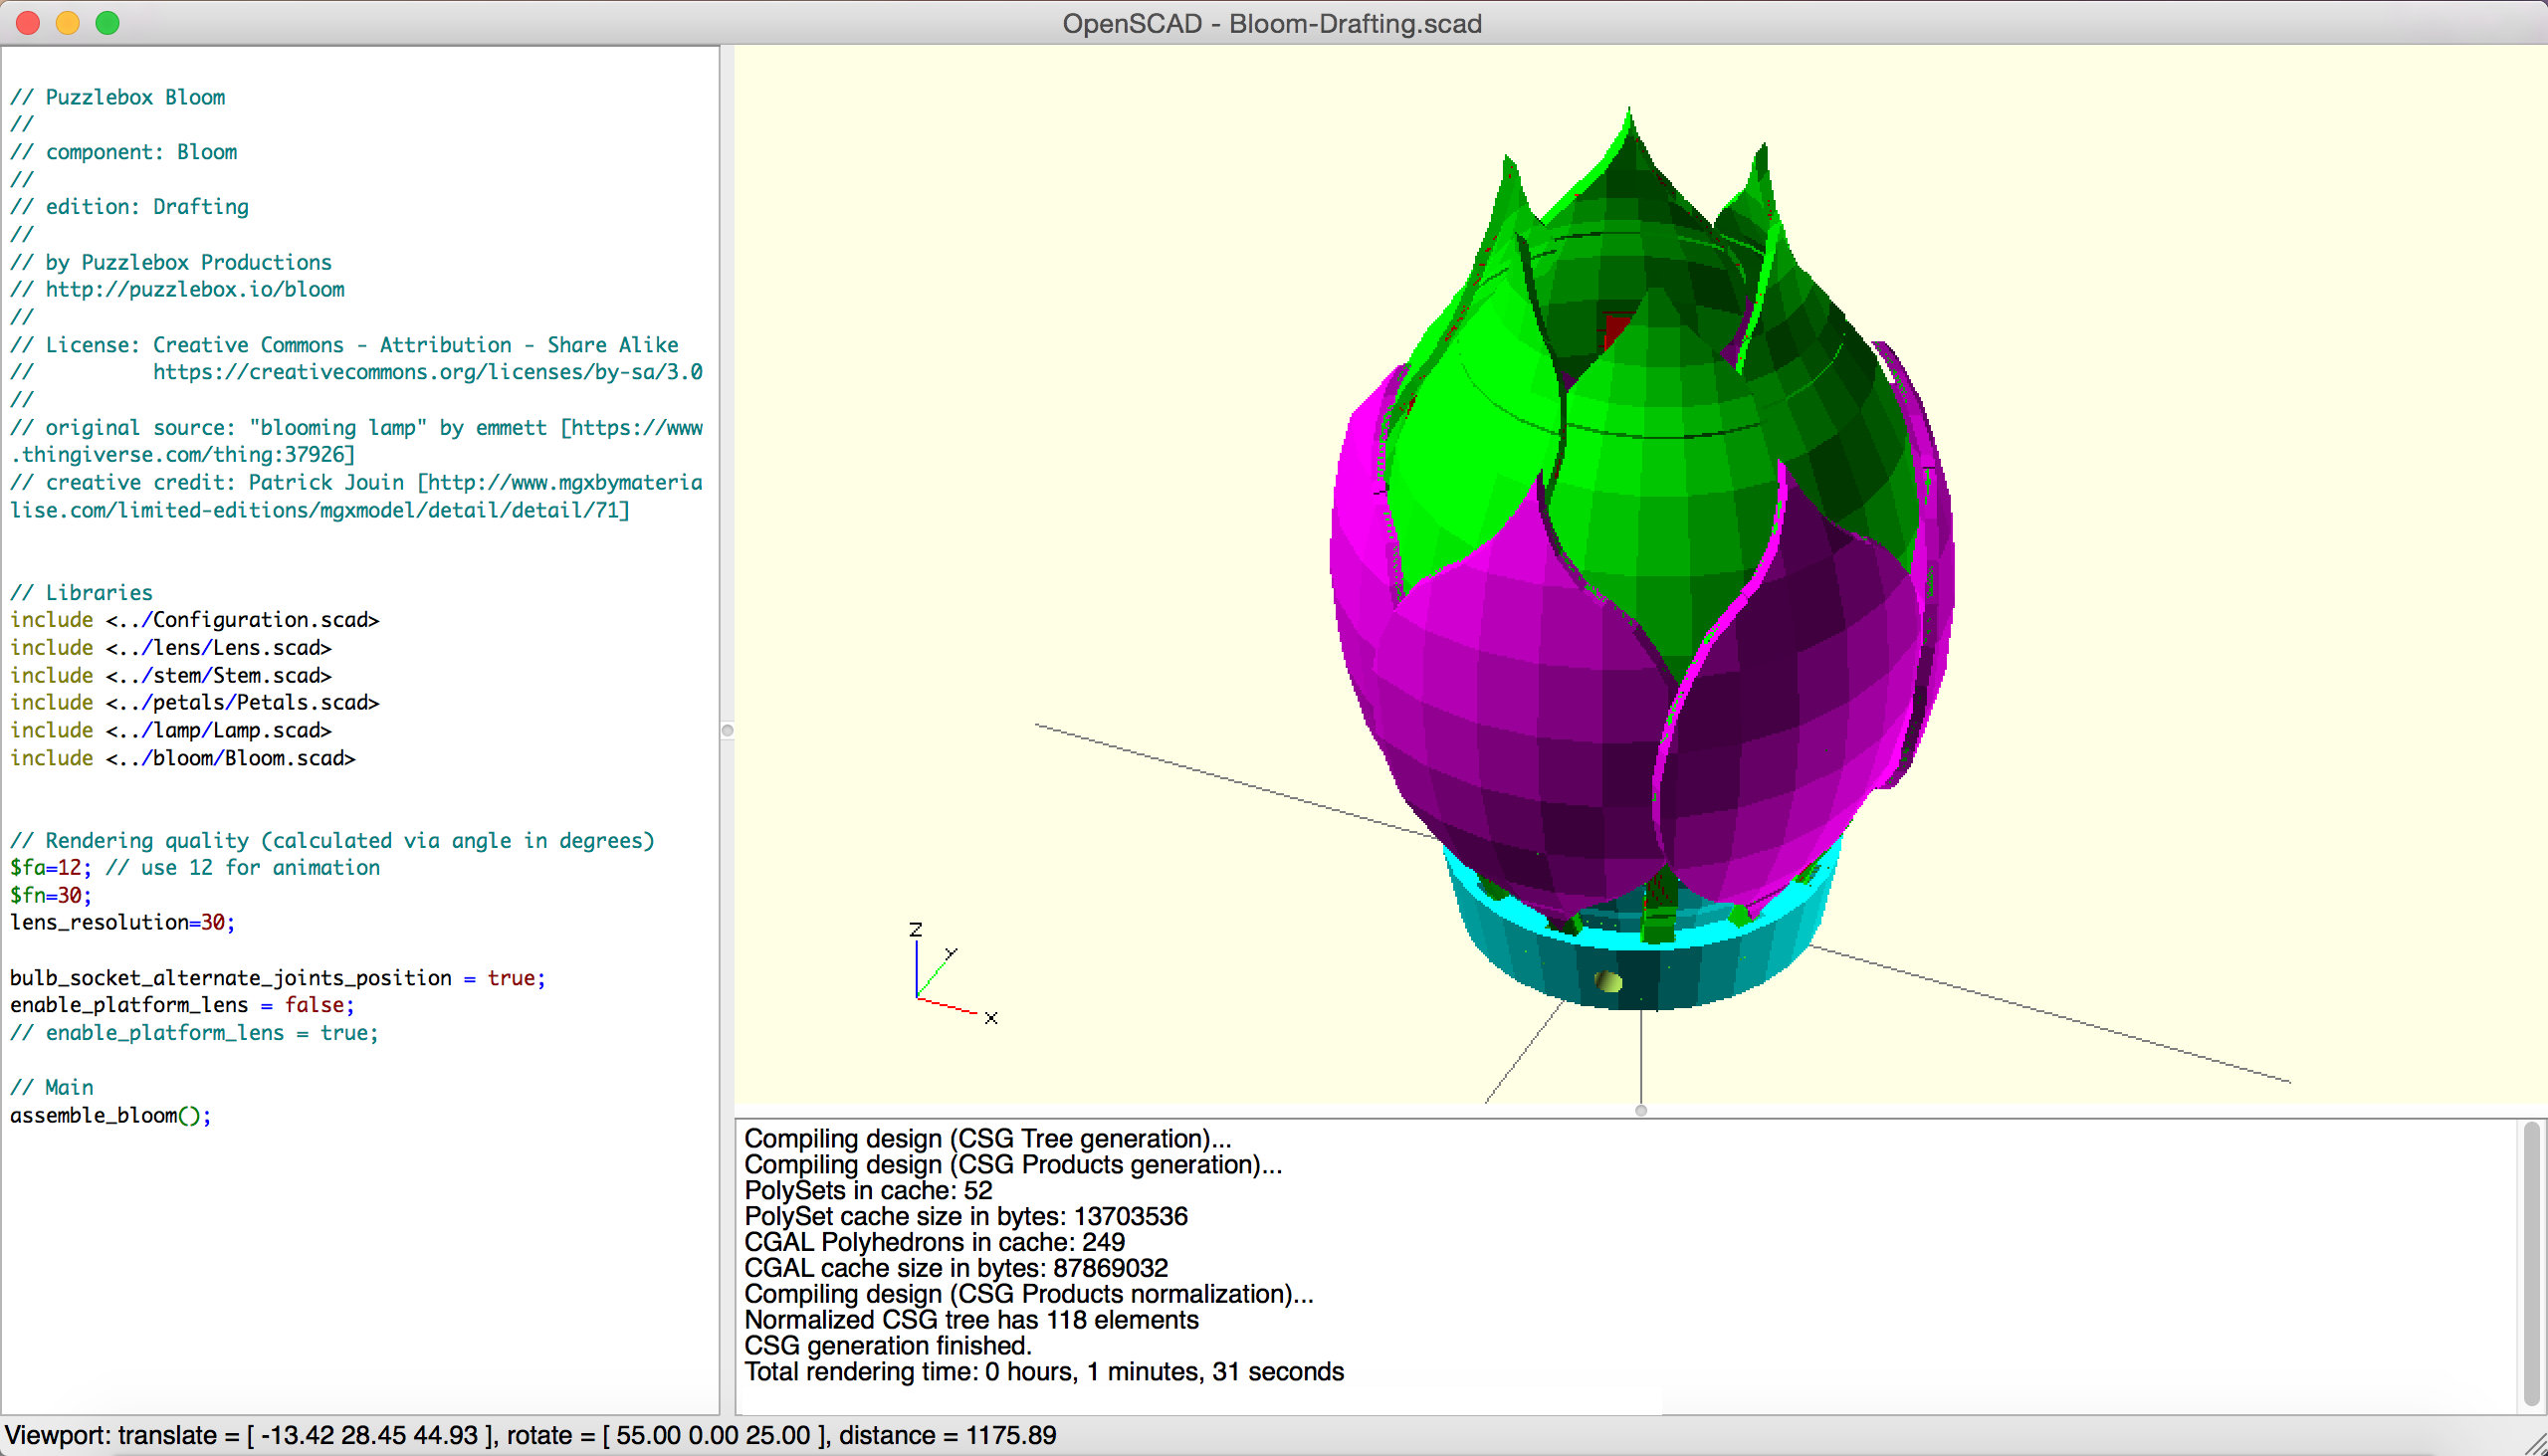 Bloom OpenSCAD